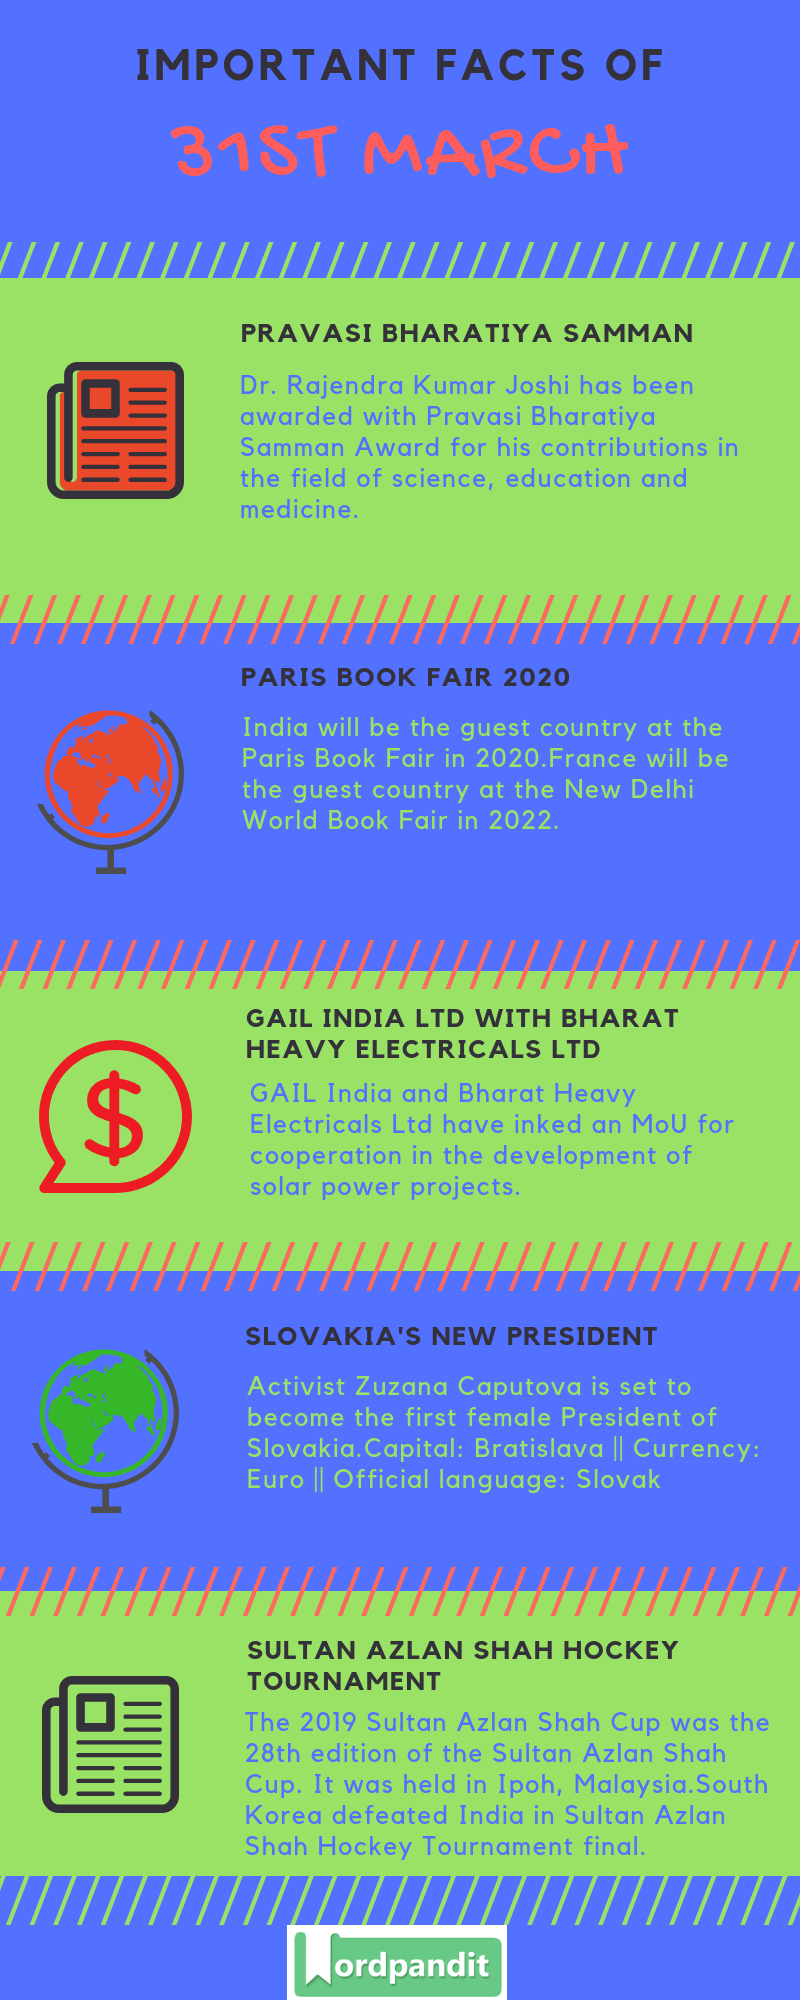 Daily Current Affairs 31 March 2019 Current Affairs Quiz 31 March 2019 Current Affairs Infographic